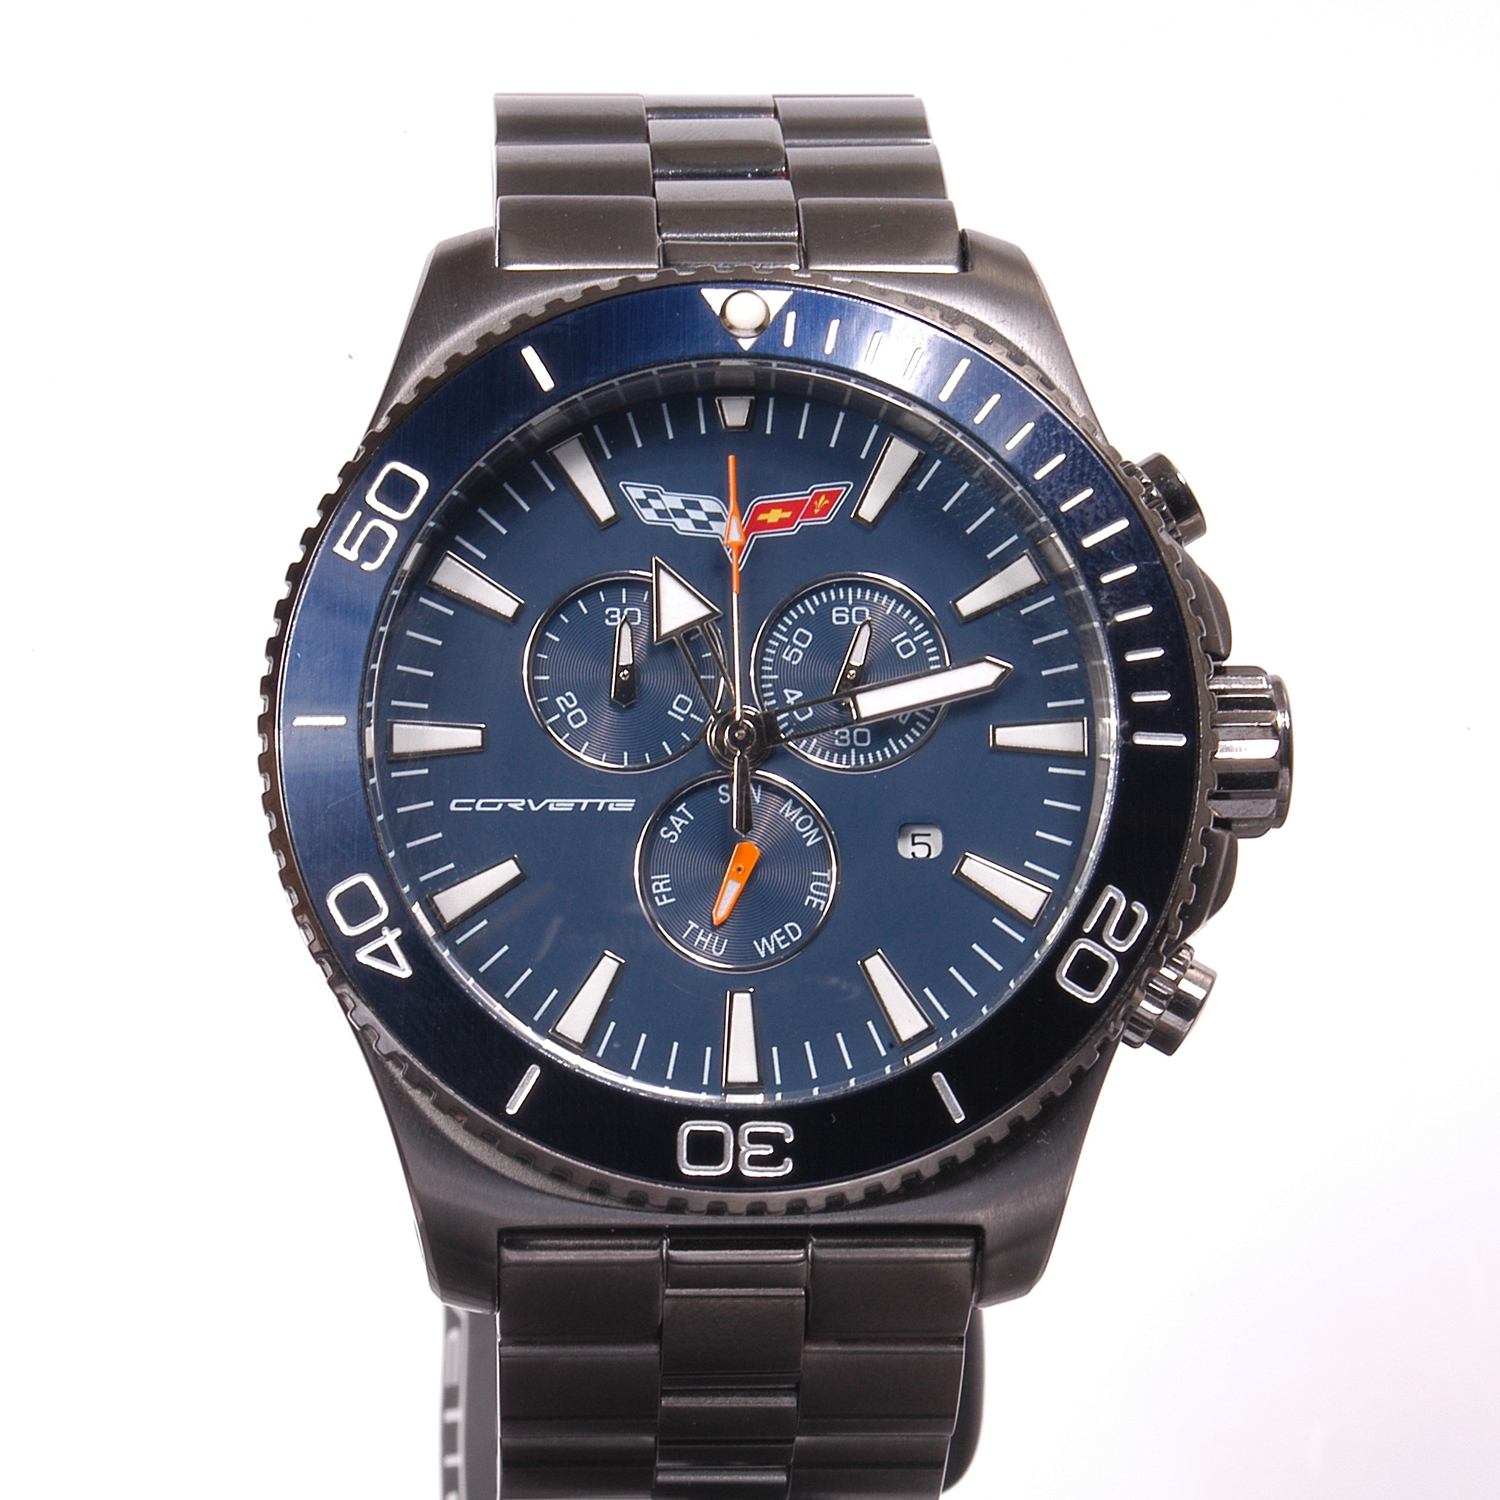 AKCR-215-GUN Corvette 215 Swiss Chrono Collection IP Gun Blue Dial